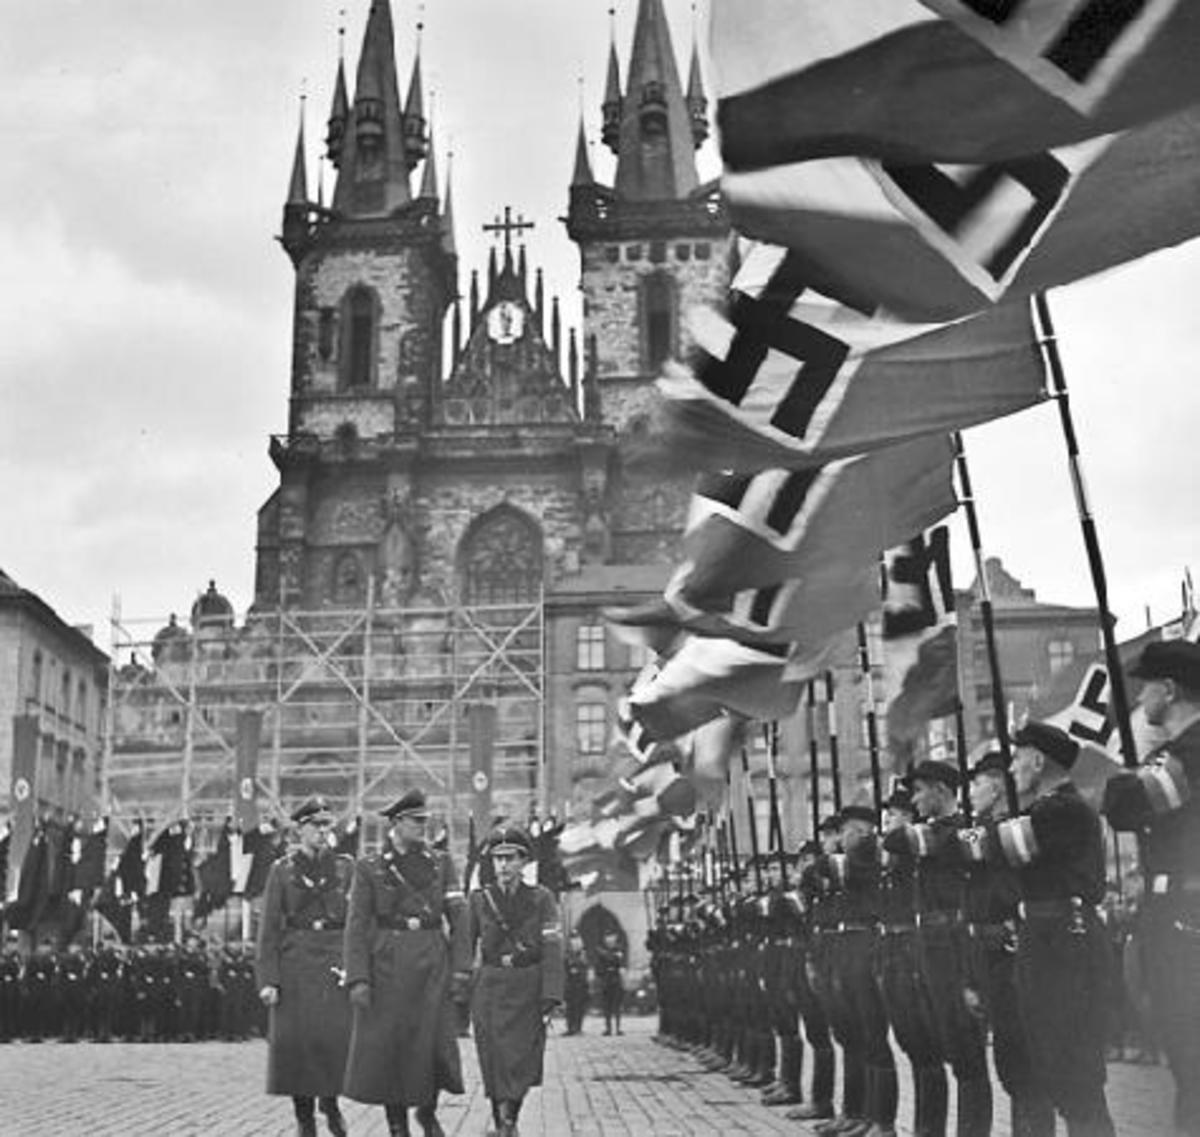 Wartime Prague, Germans on parade